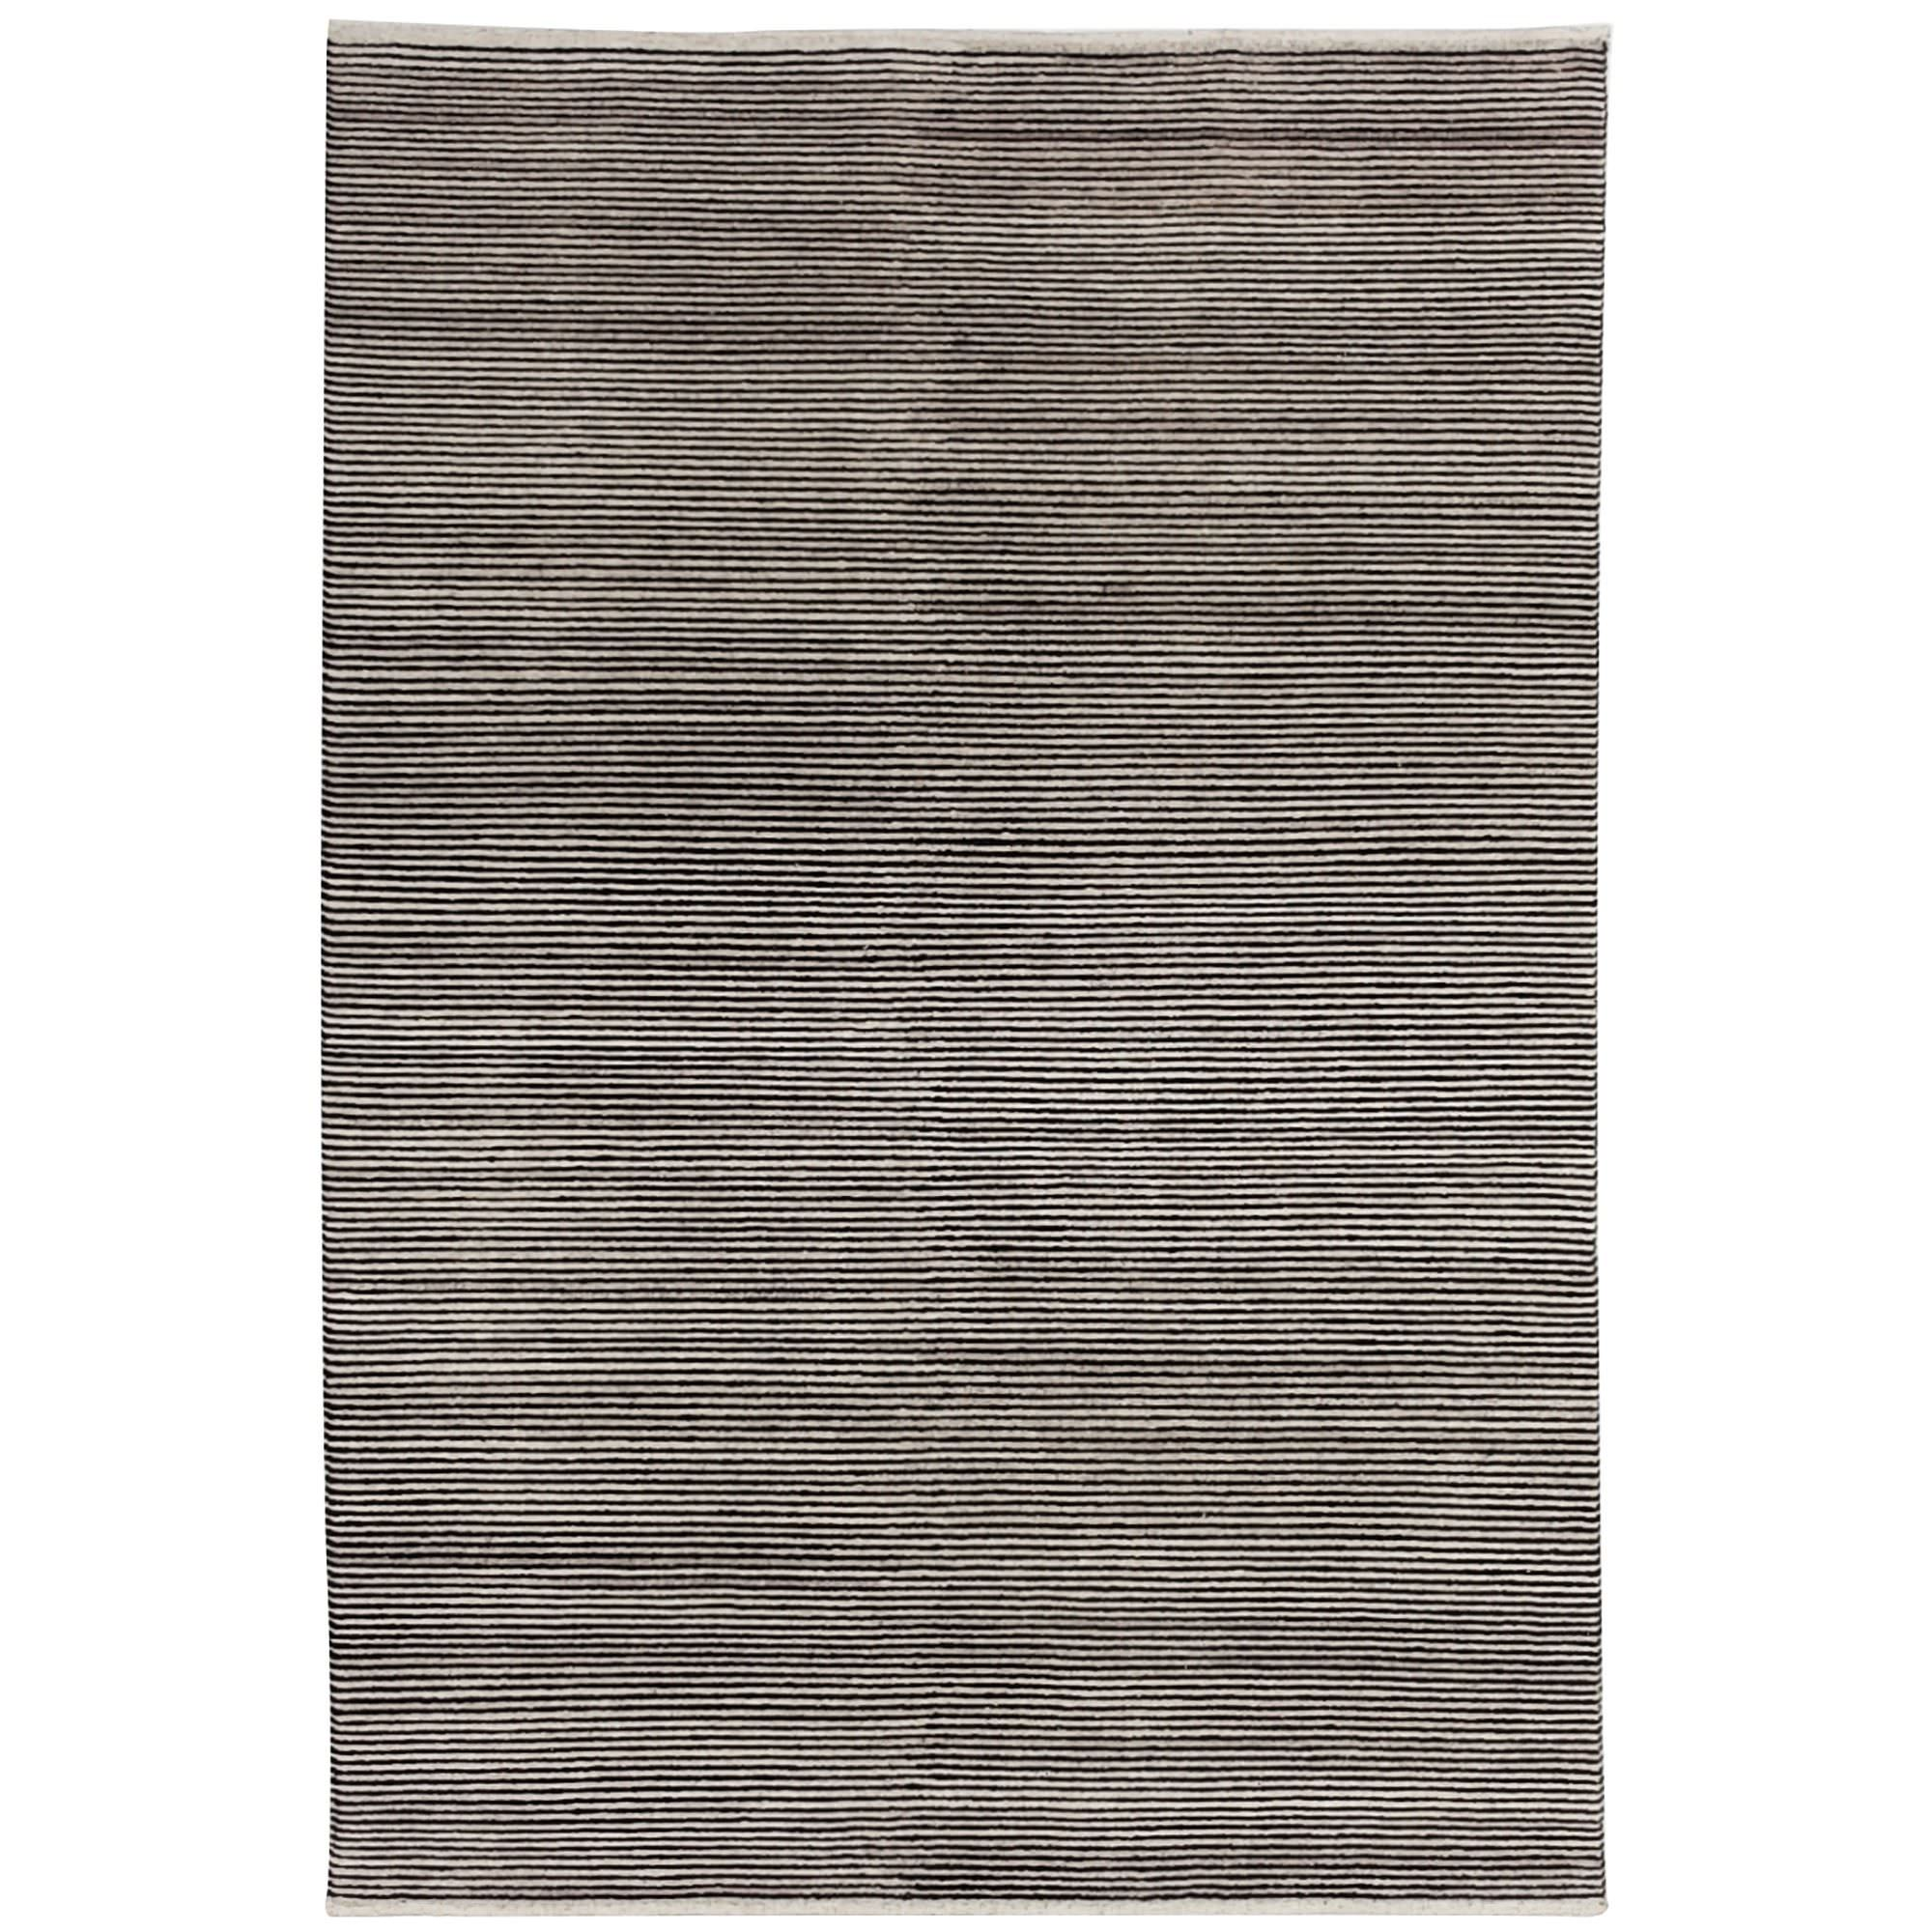 Boheme Hand Tufted Wool Rug, 300x400cm, Charcoal